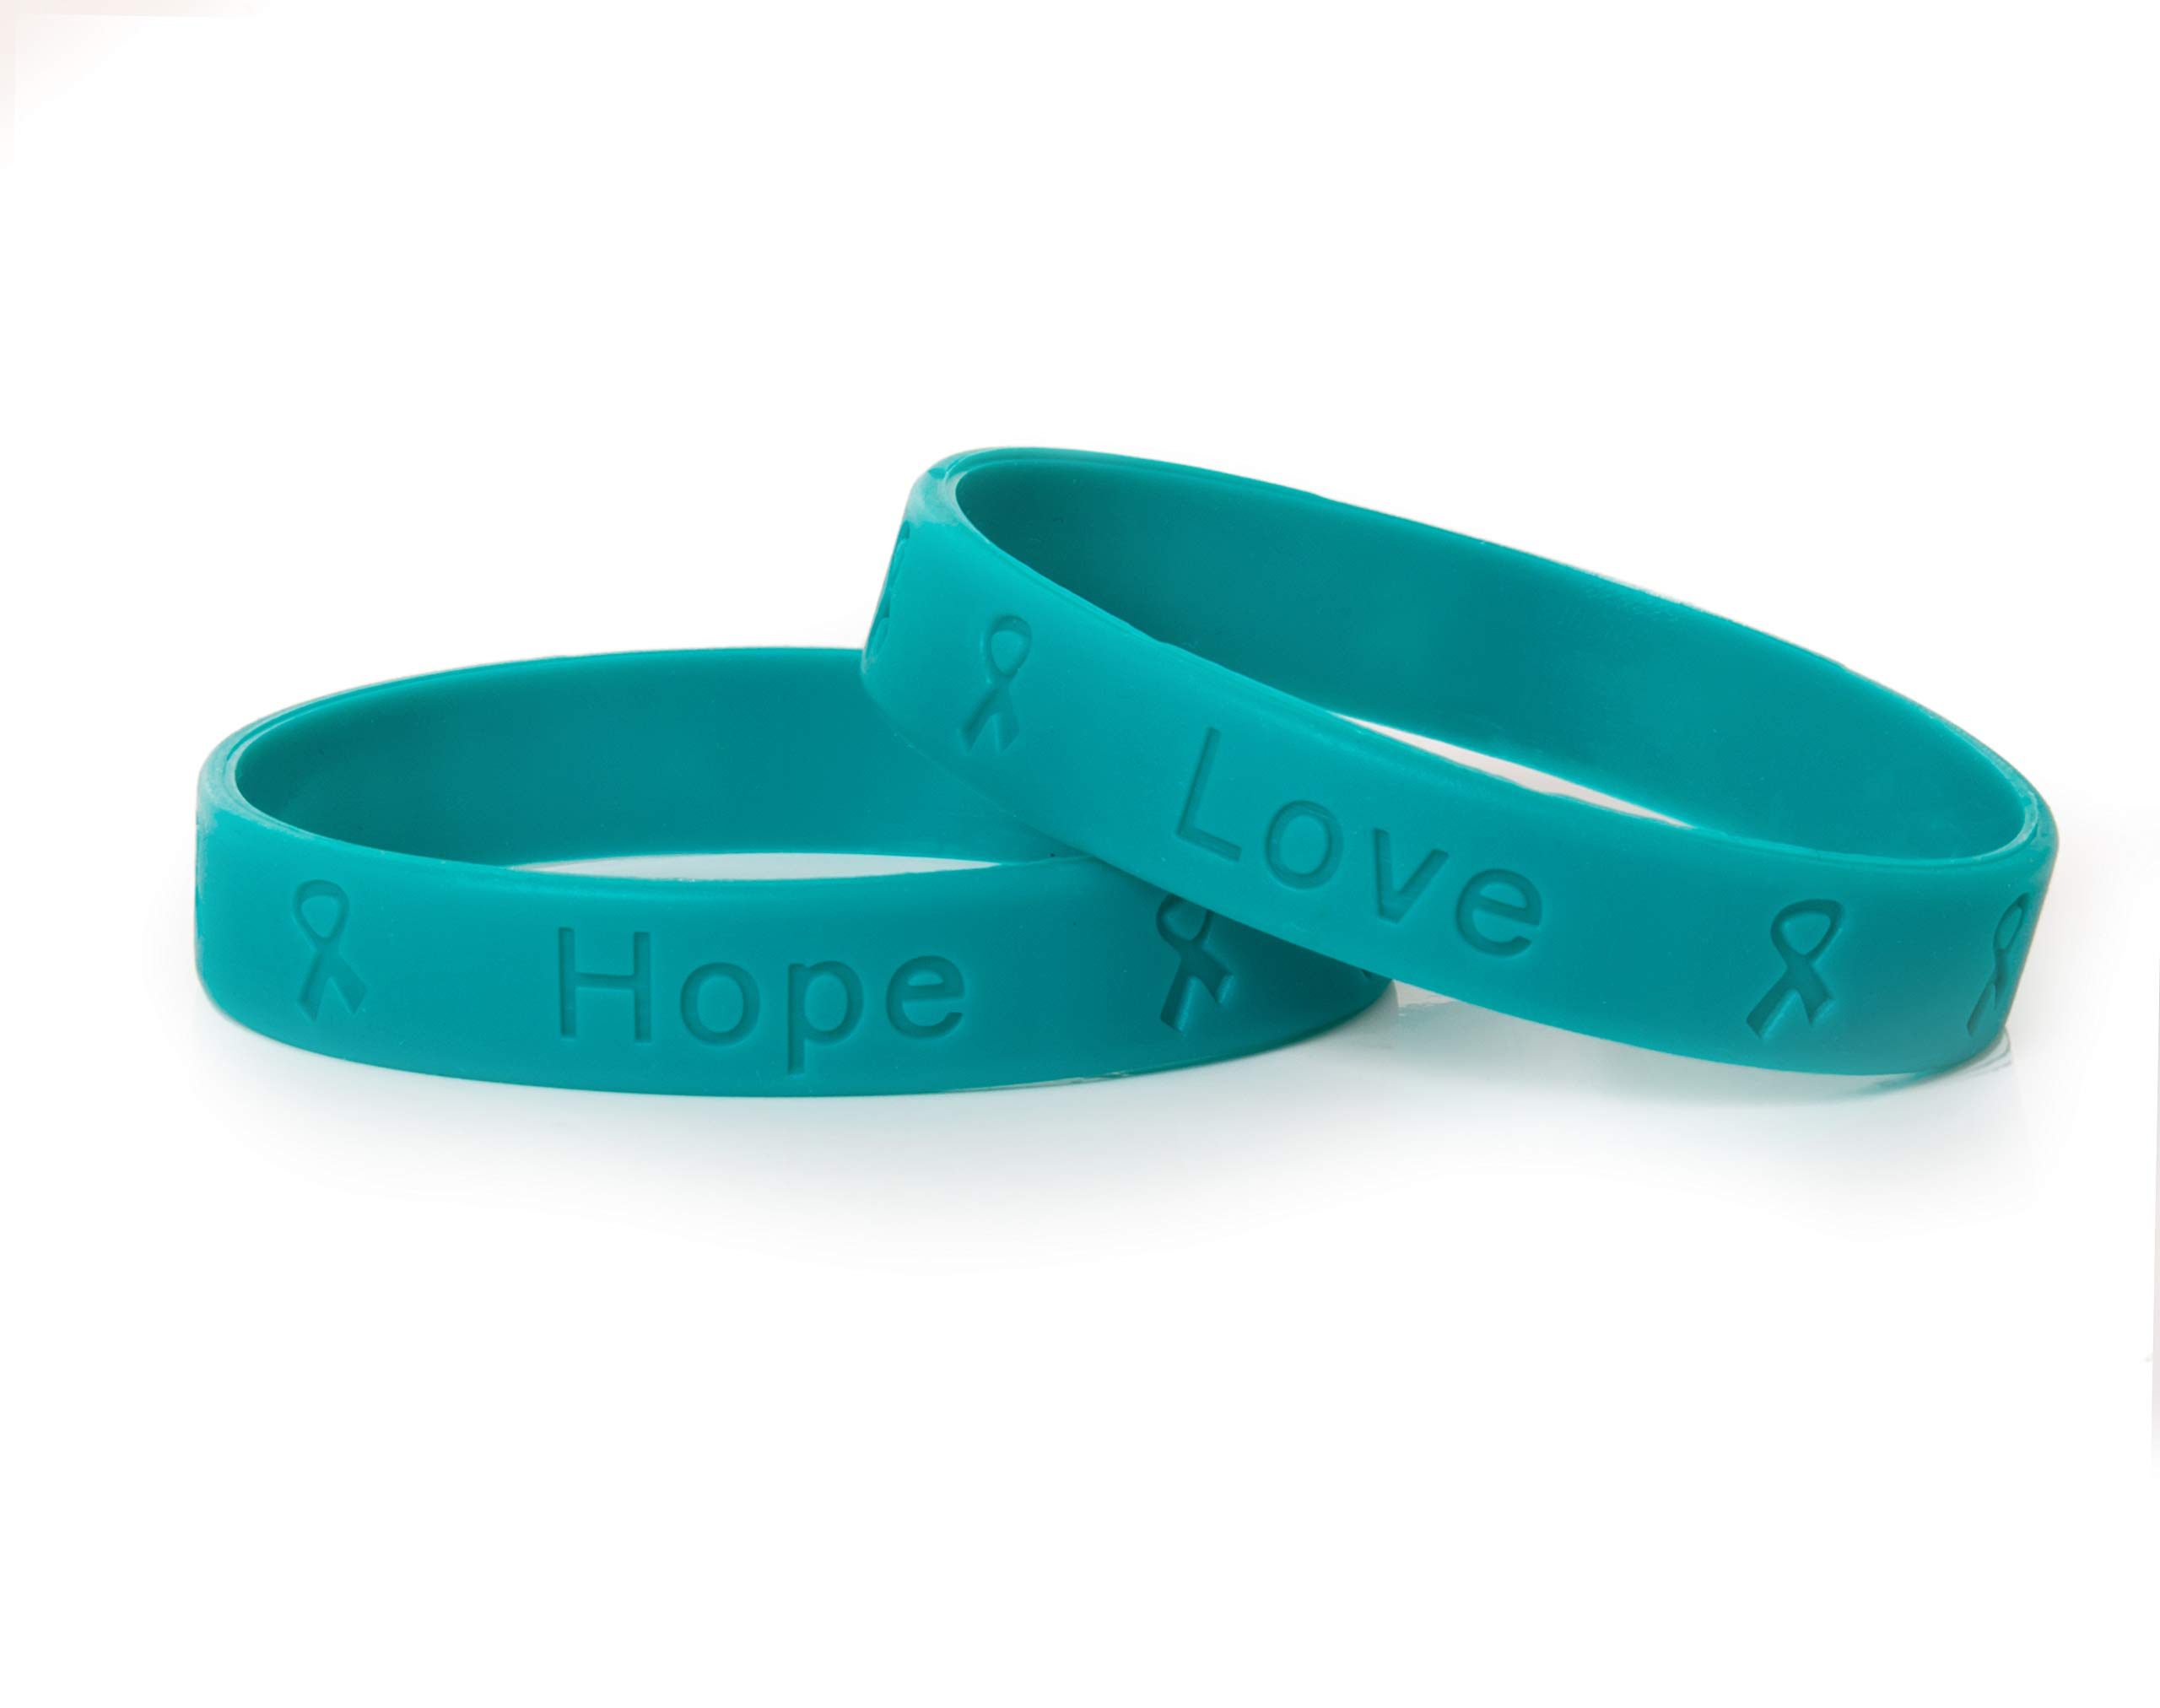 Teal Anti-Bullying Silicone Bracelets - Adult Size (Wholesale Pack - 50 bracelets)